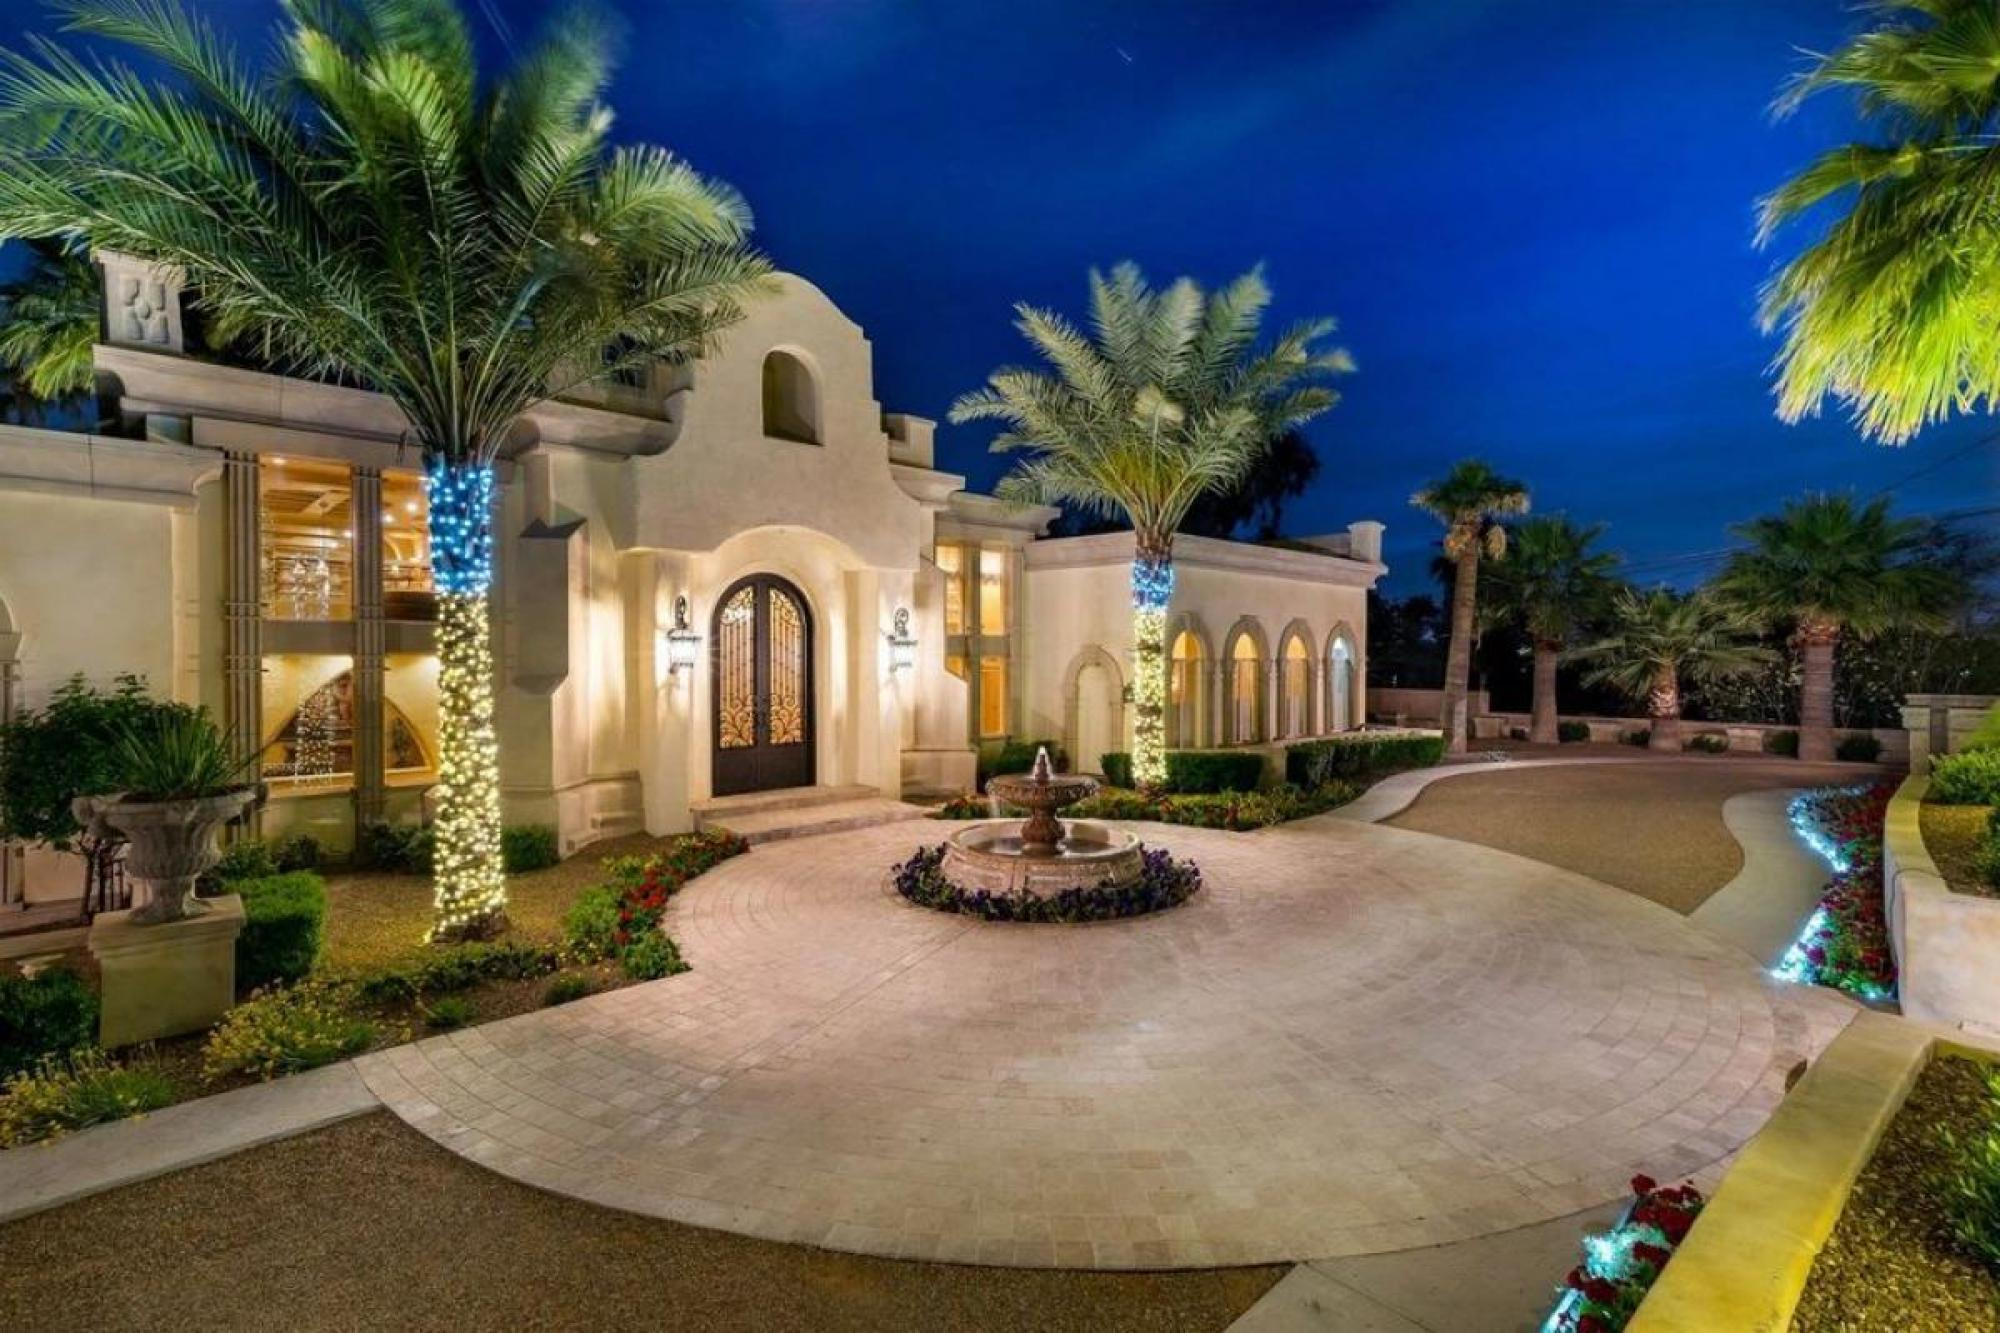 Picture of Home For Sale in Phoenix, Arizona, United States